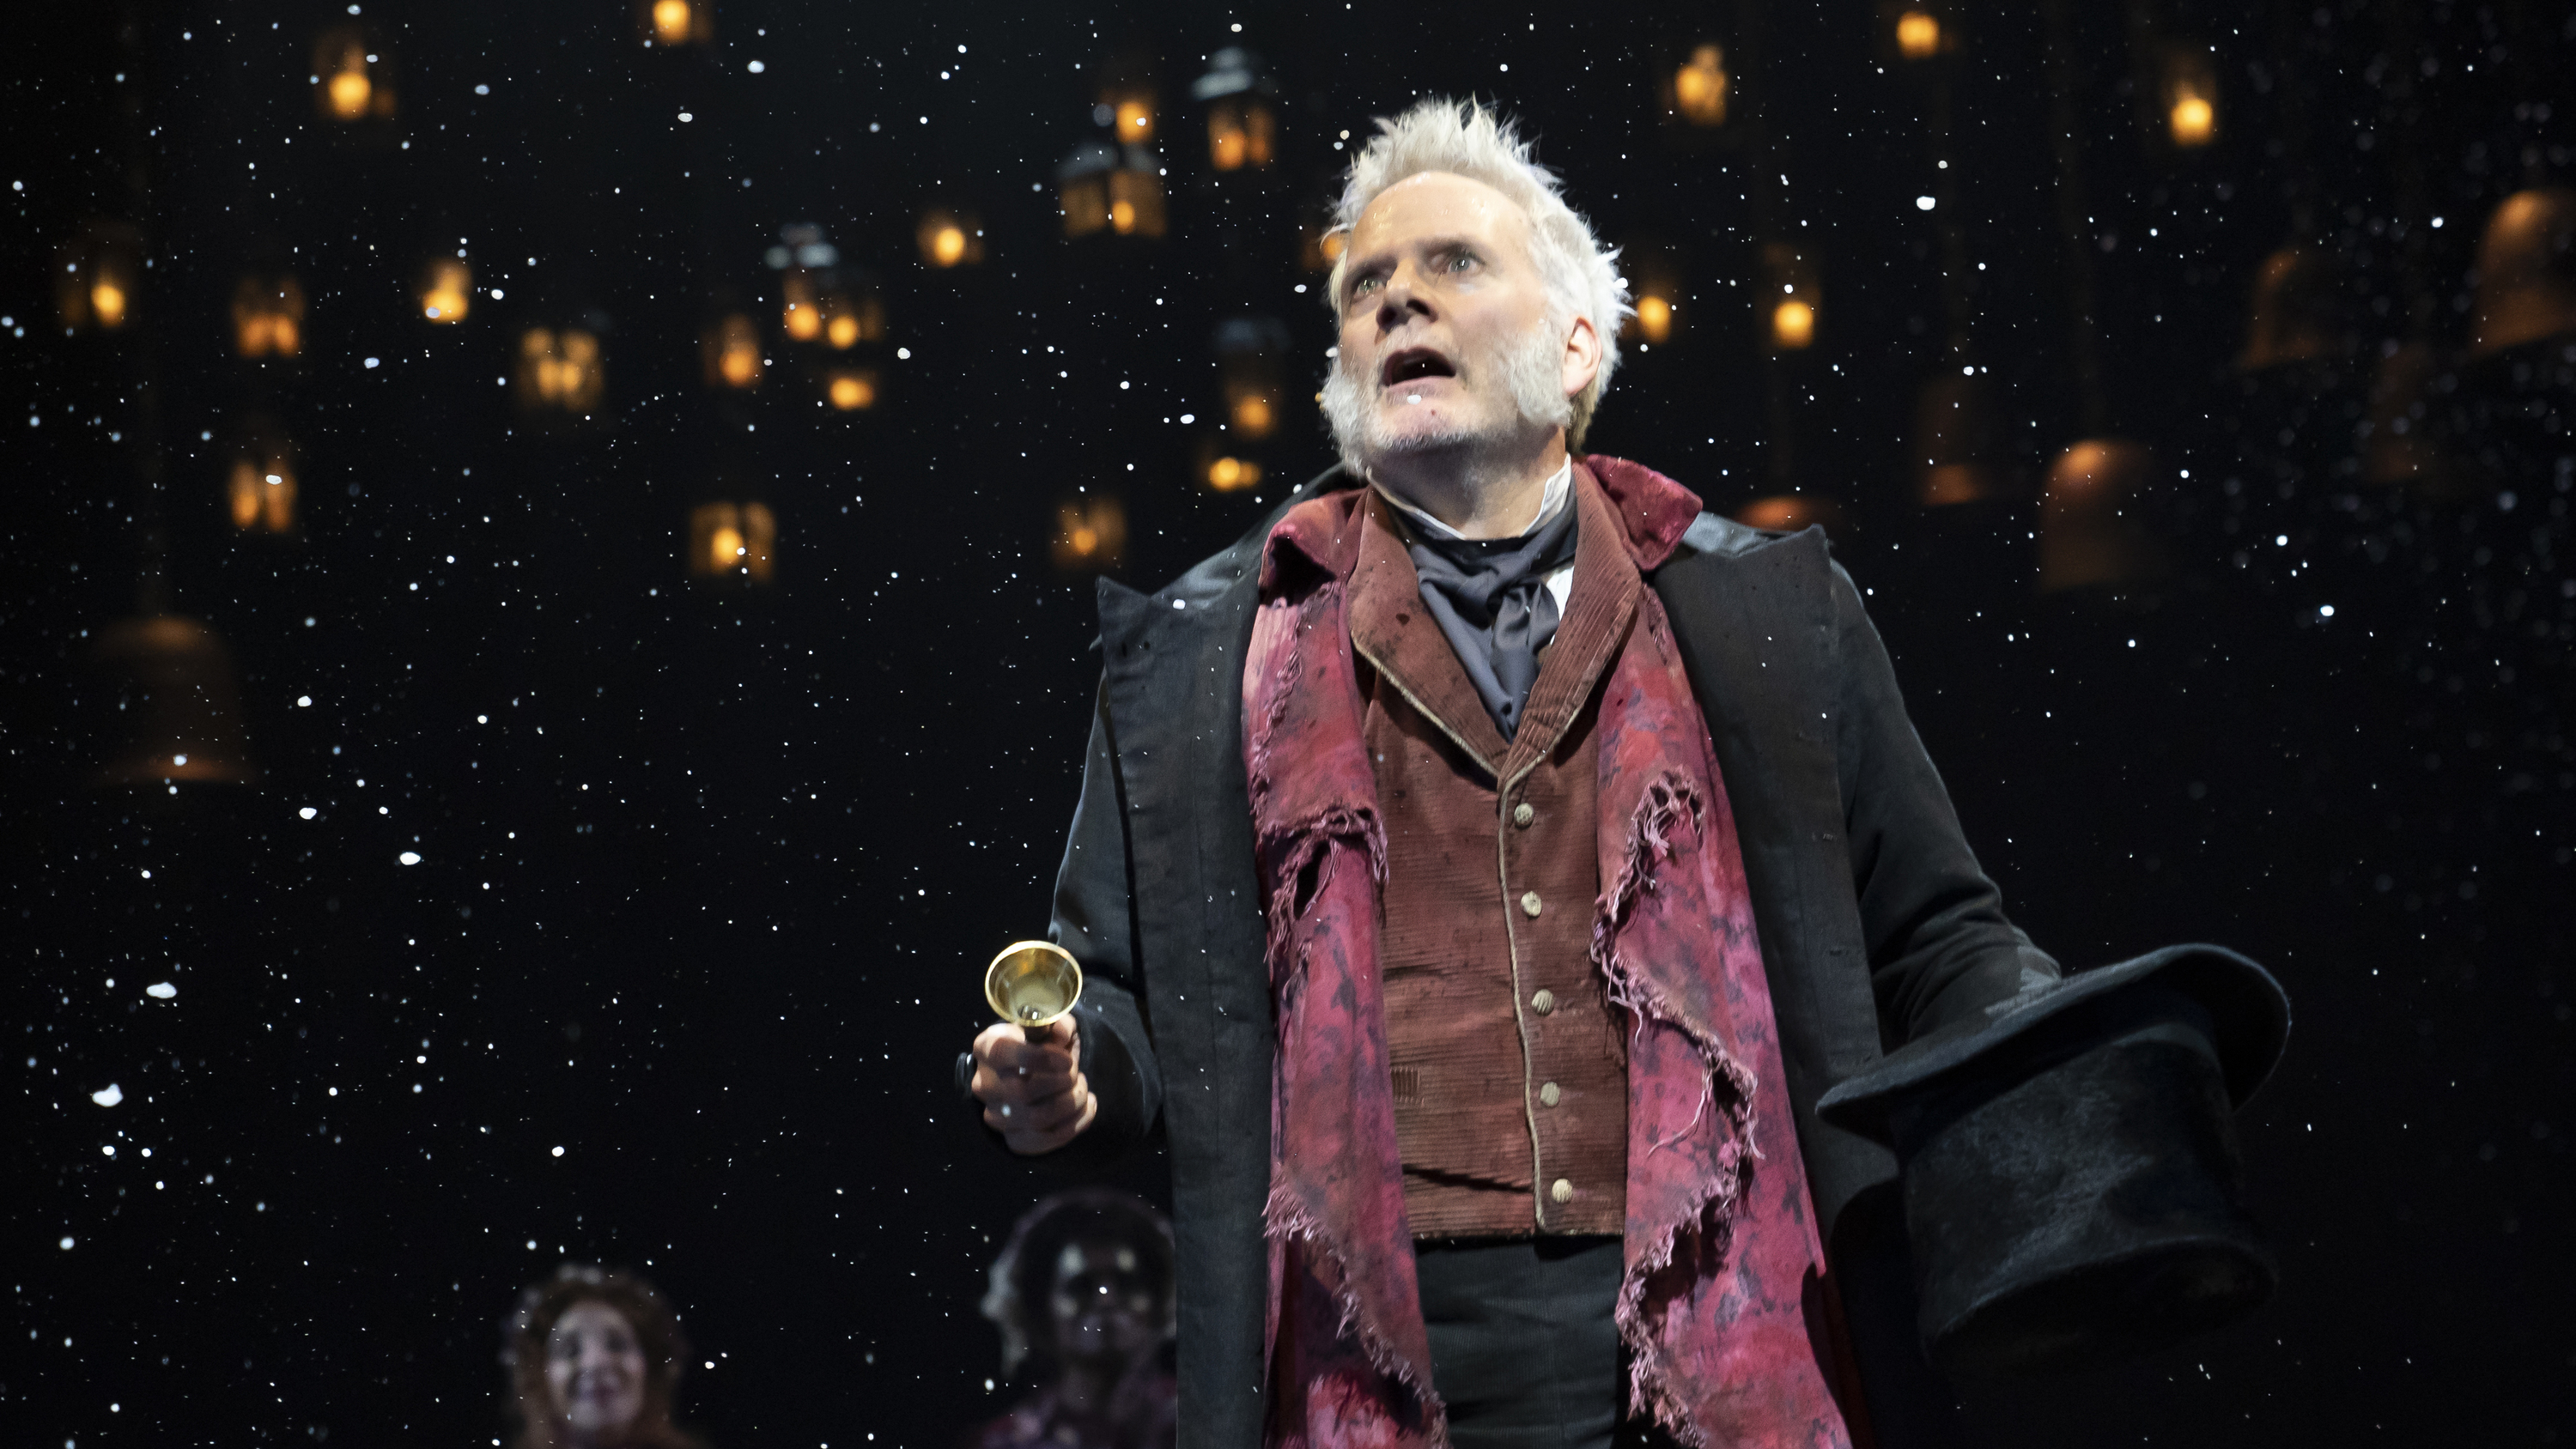 A Christmas Carol NYC Theater for the